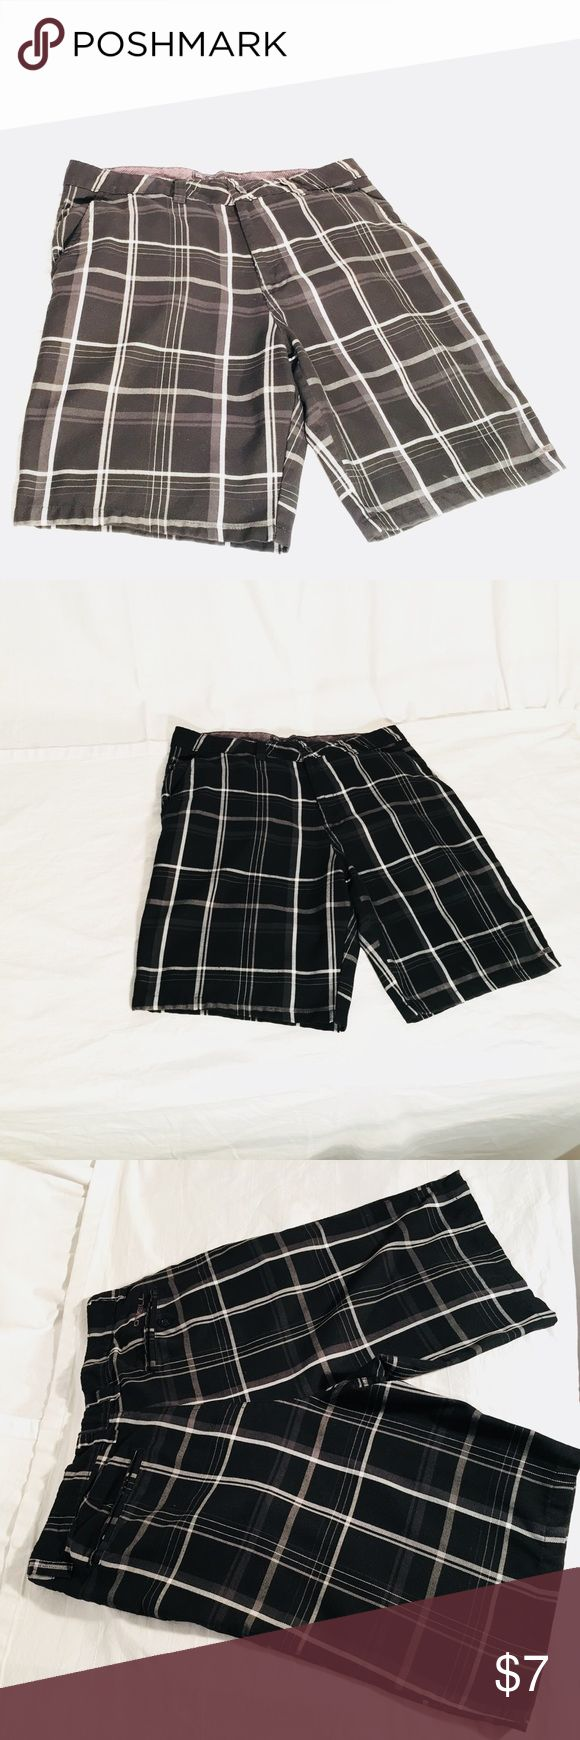 Men's Plaid shorts O'Neill Plaid Black andWhite shorts mimic the cut of swim trunks, have subtle side pockets with room like a cargo short, and the finished upper like a pair of slacks.  Purchased at Macys oneill Shorts Flat Front